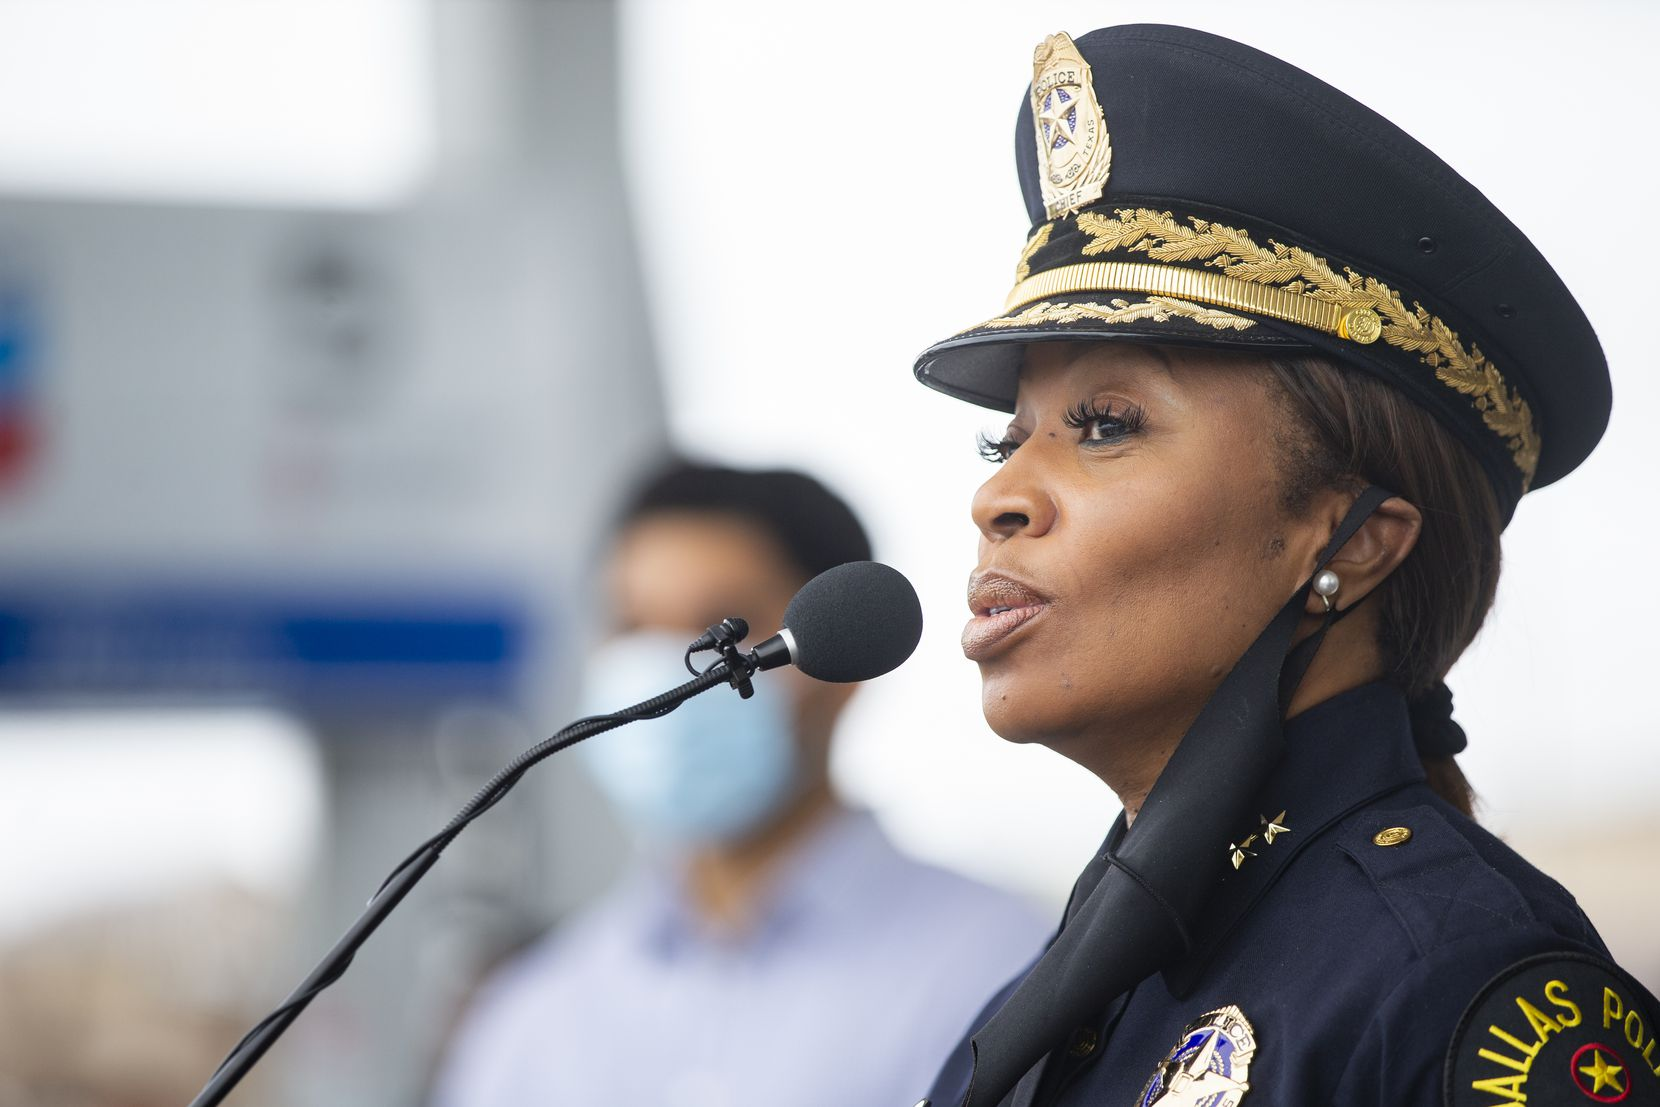 Dallas Police Chief U. Reneé Hall spoke at a news conference about the expansion of their camera-monitoring pilot program called Starlight at a Chevron gas station at 9791 Forest Lane on Tuesday, Sept. 22, 2020, in Dallas. (Juan Figueroa/ The Dallas Morning News)